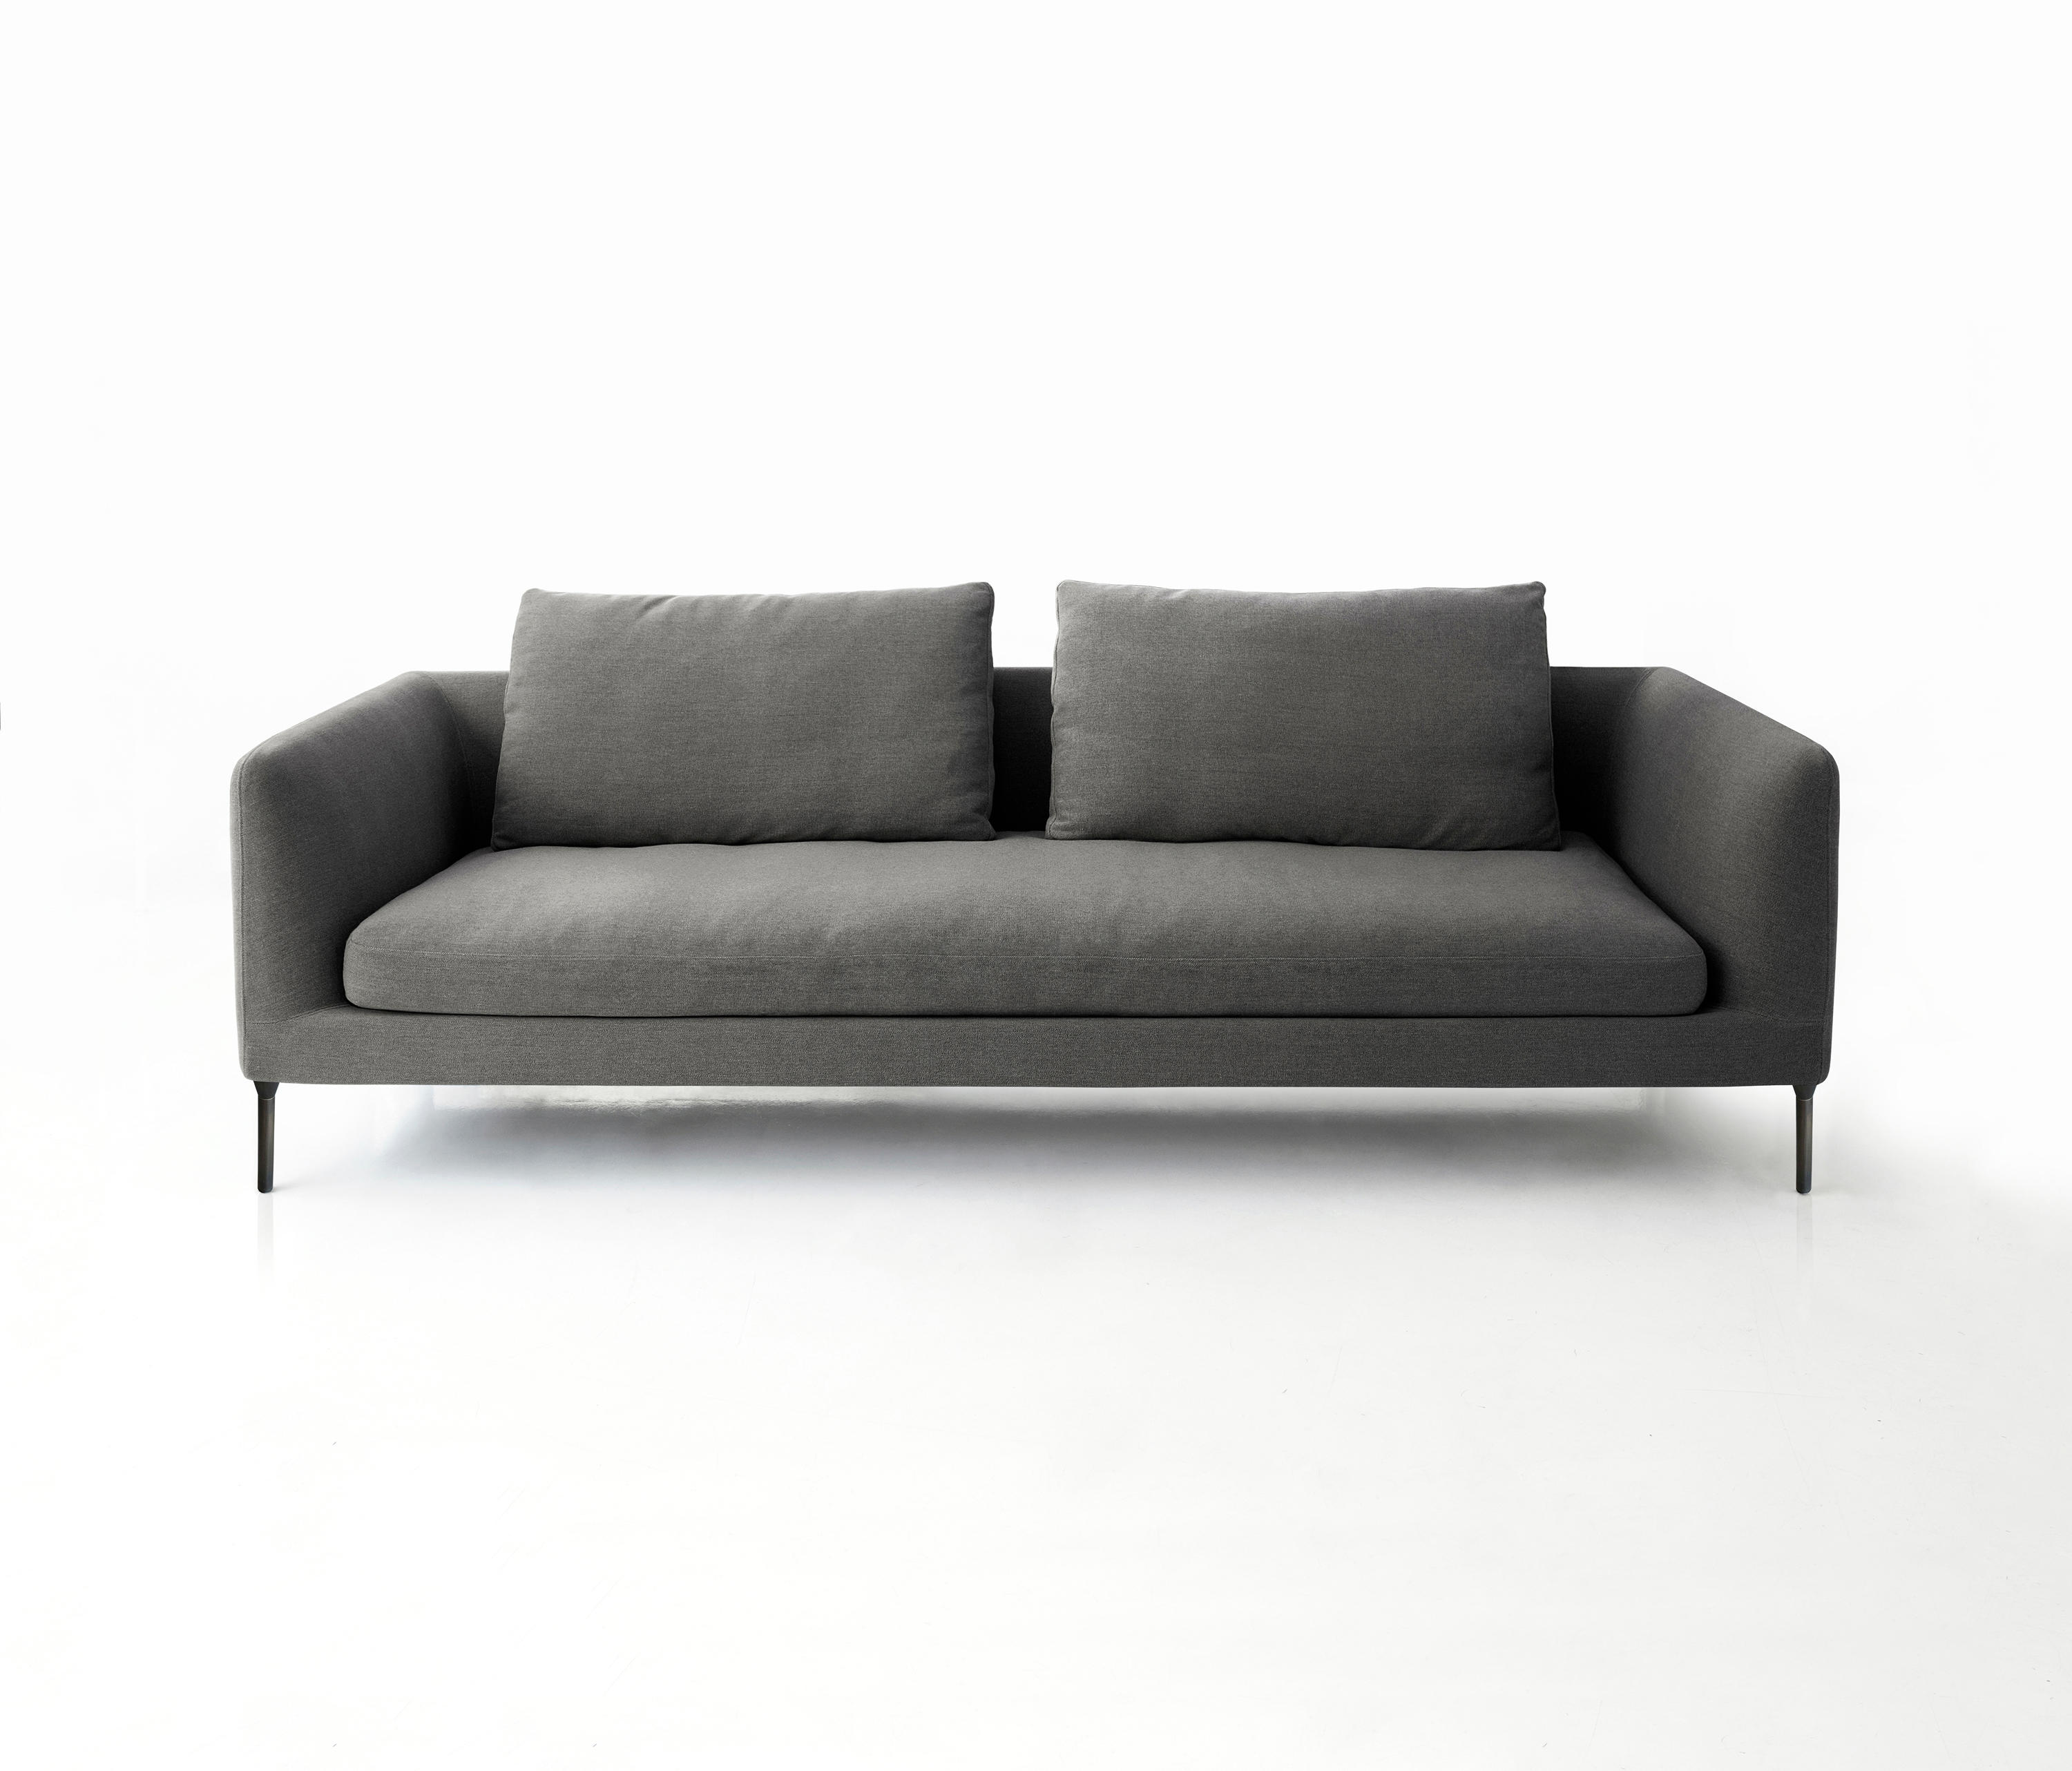 Fine Delta 175 Sofa Sofas From Bensen Architonic Ocoug Best Dining Table And Chair Ideas Images Ocougorg